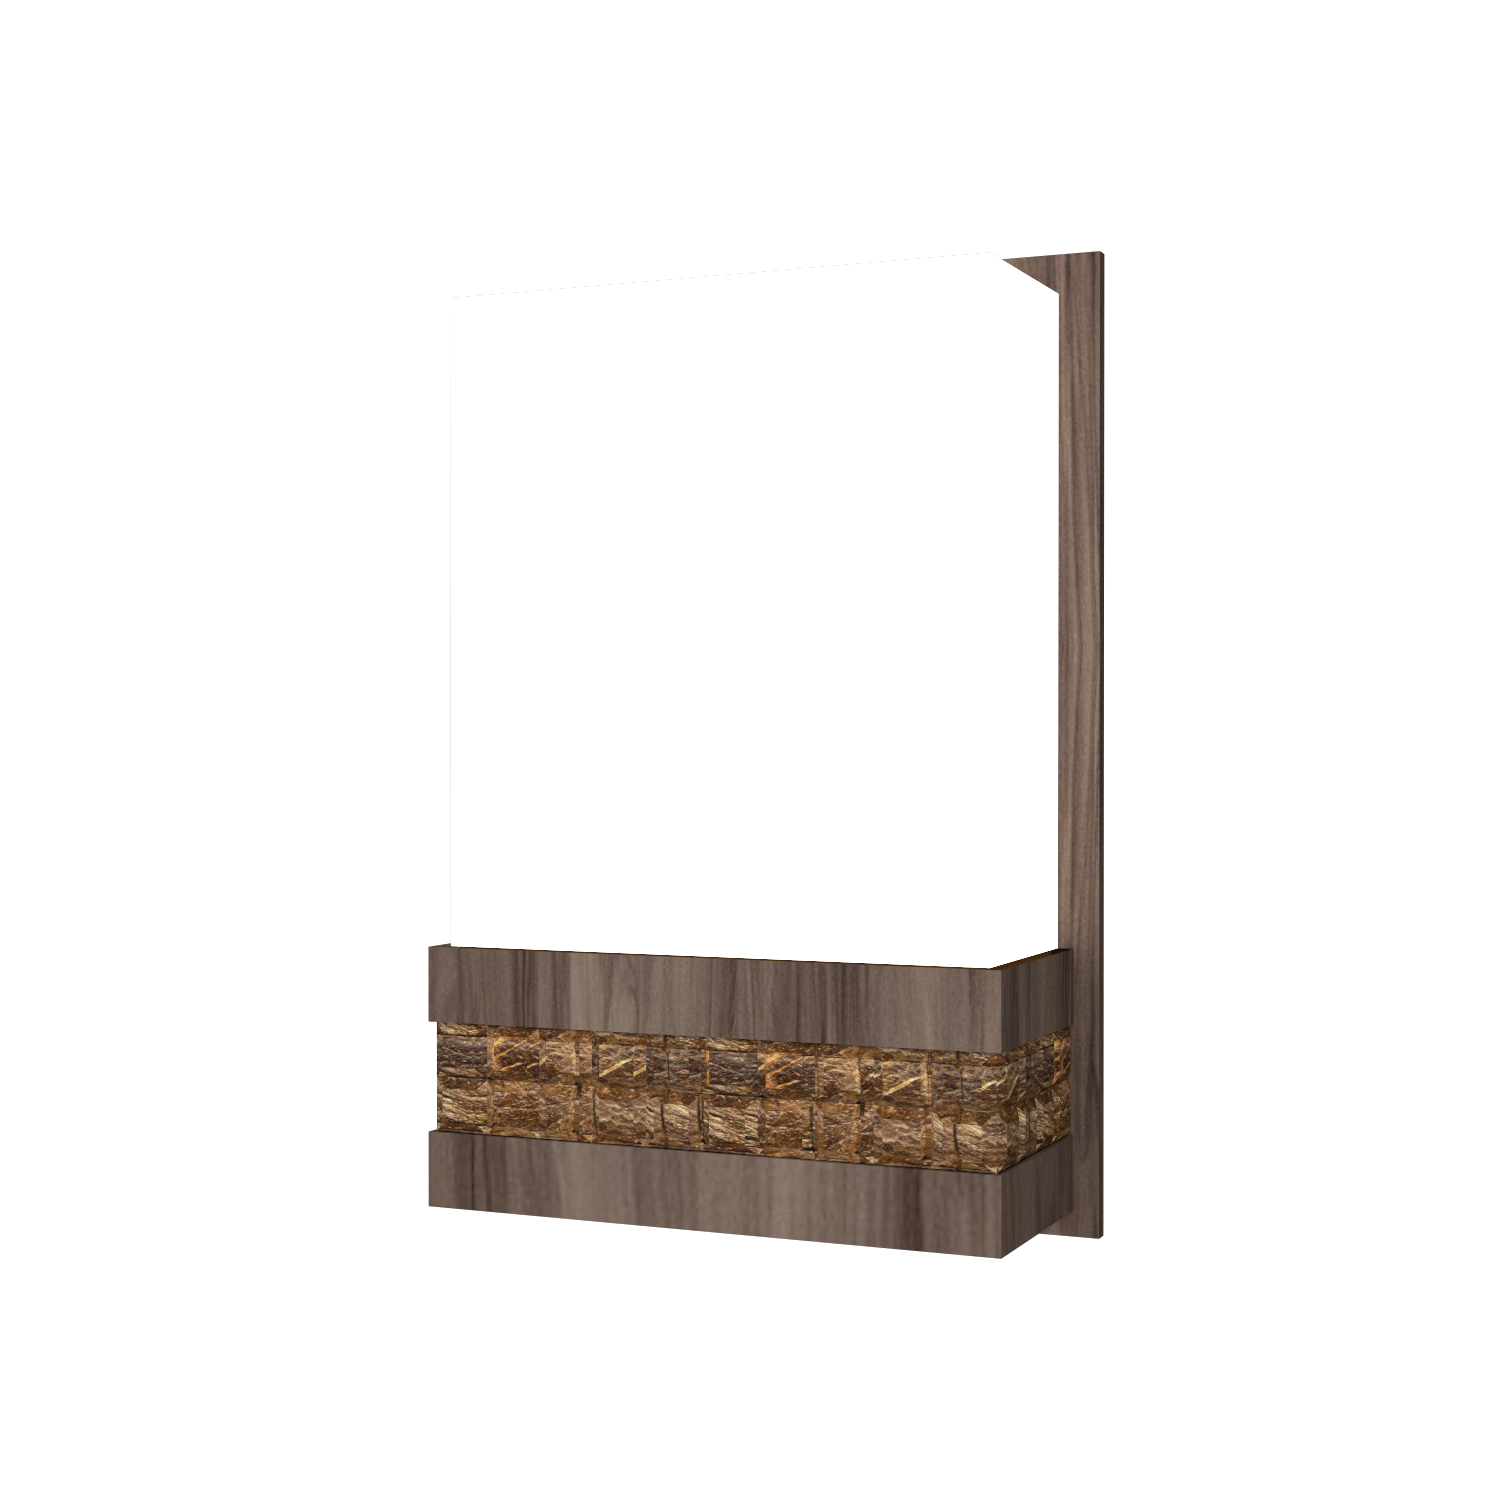 Wall Lamp Accord Pastilhada 443 - Pastilhada Line Accord Lighting | 18. American Walnut